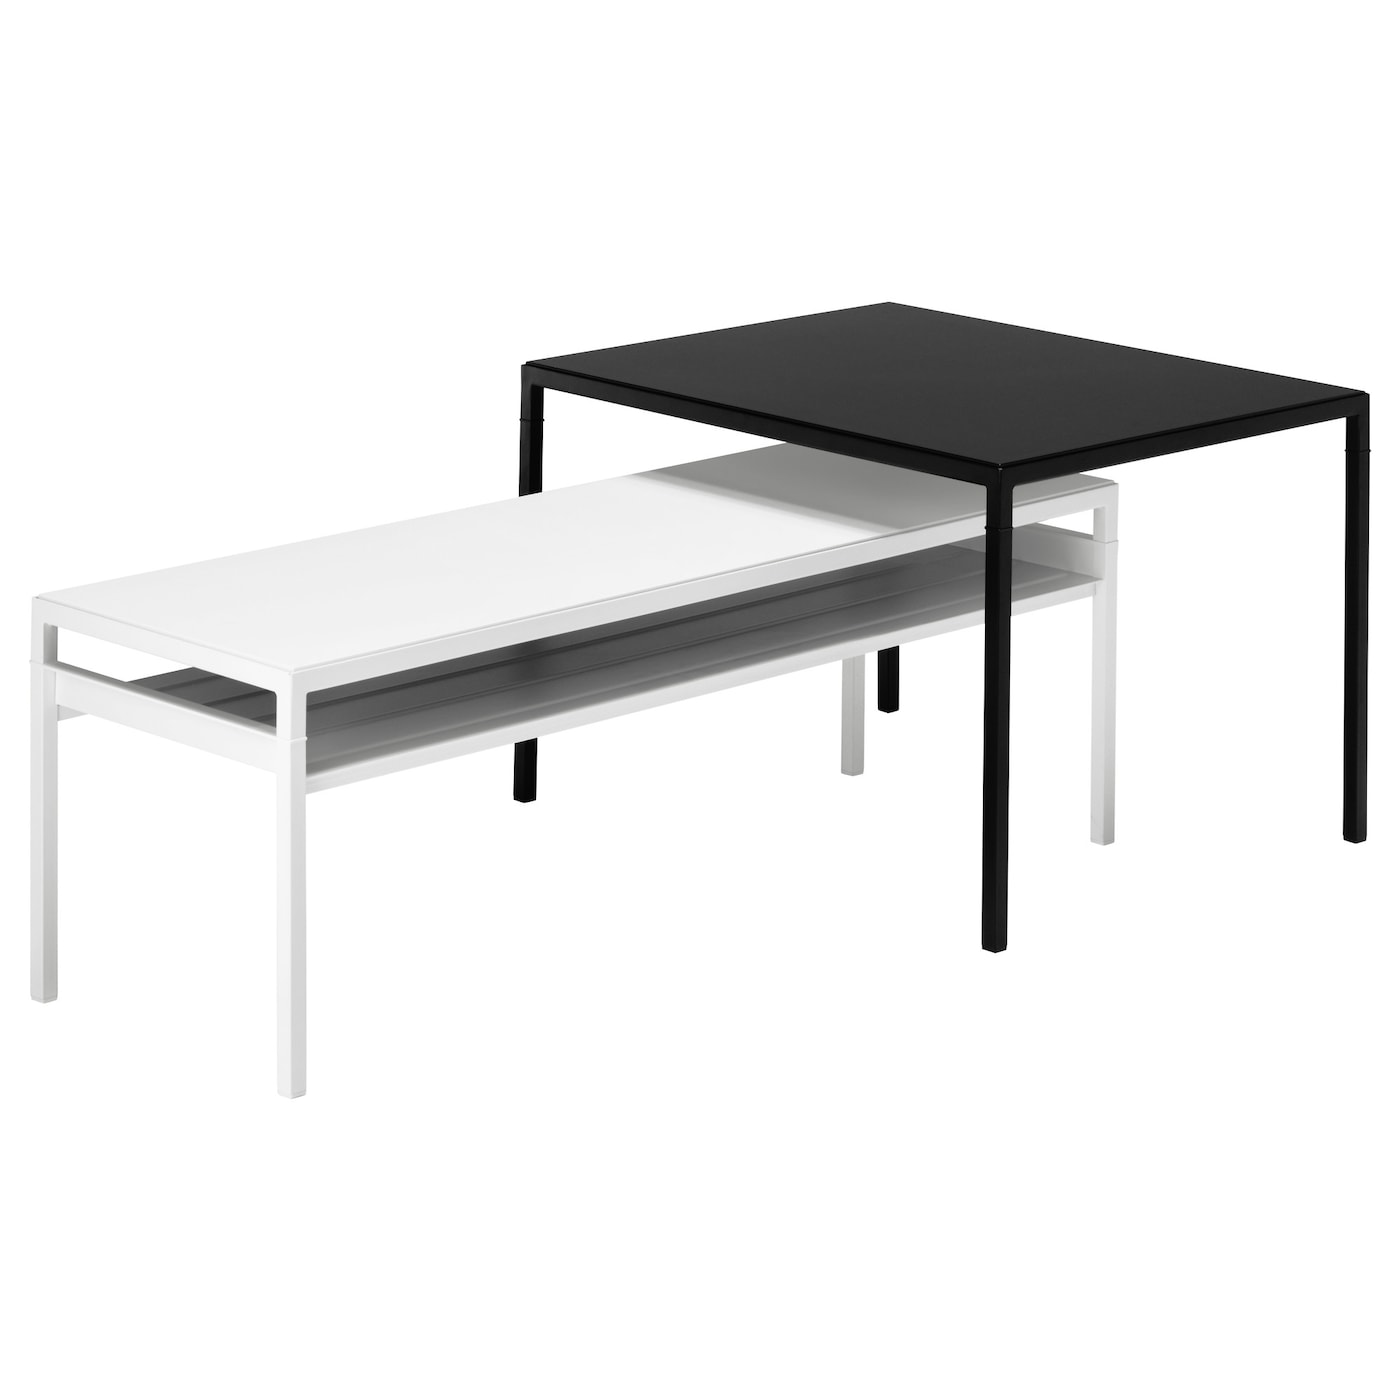 NYBODA Nest of tables with reversible tops Set of 2 black white IKEA